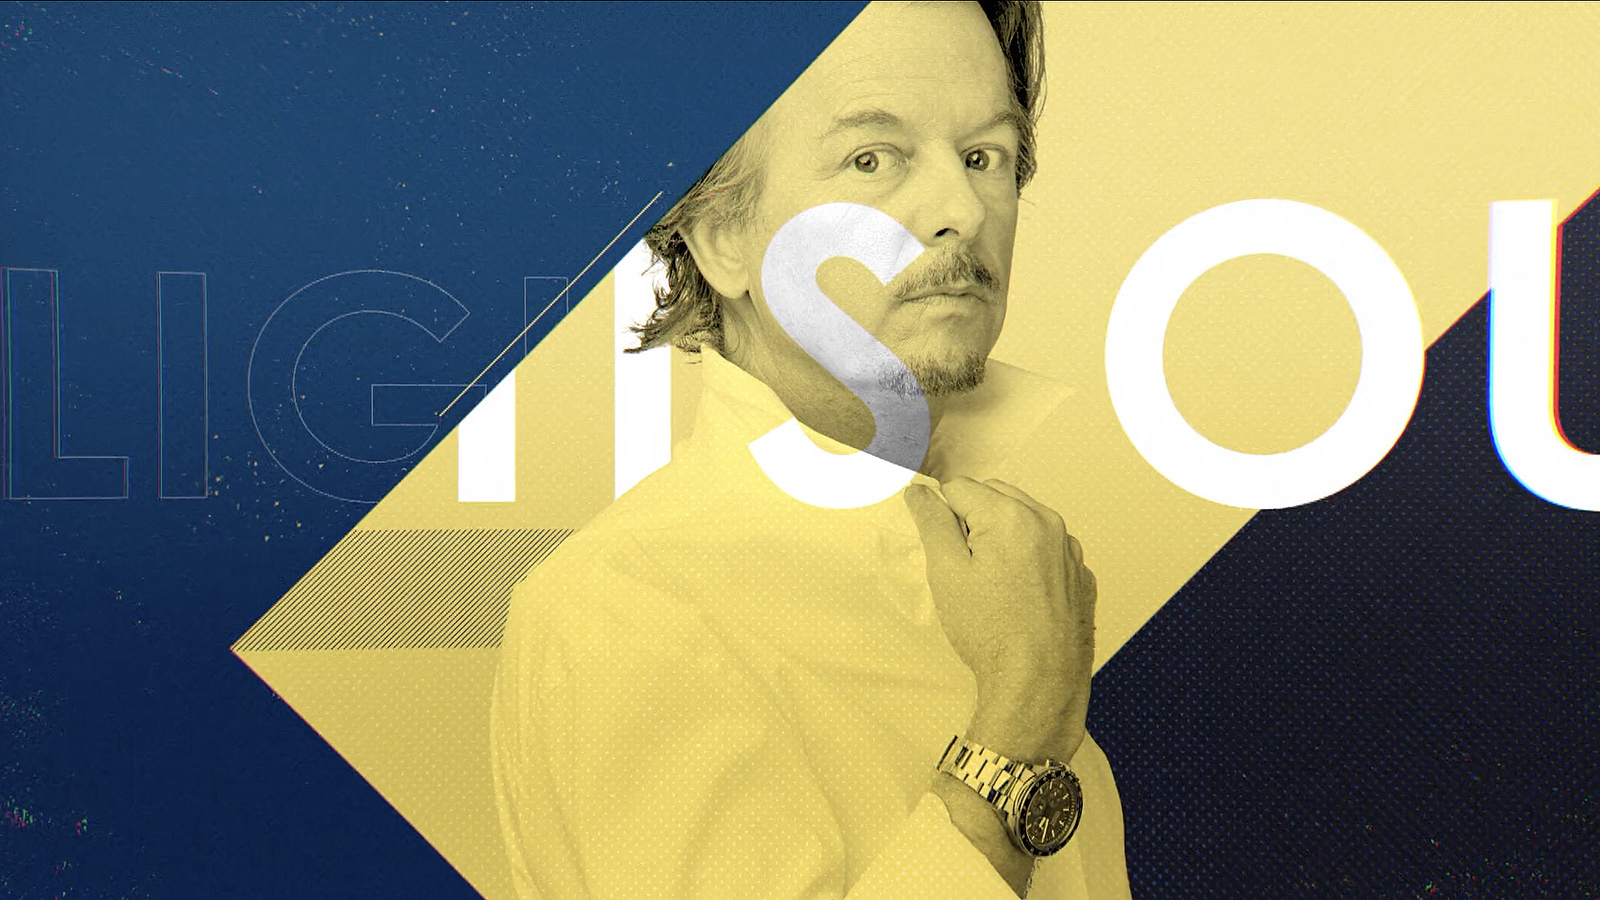 NCS_Comedy-Central_David-Spade_LightsOut_Motion-Graphics_007